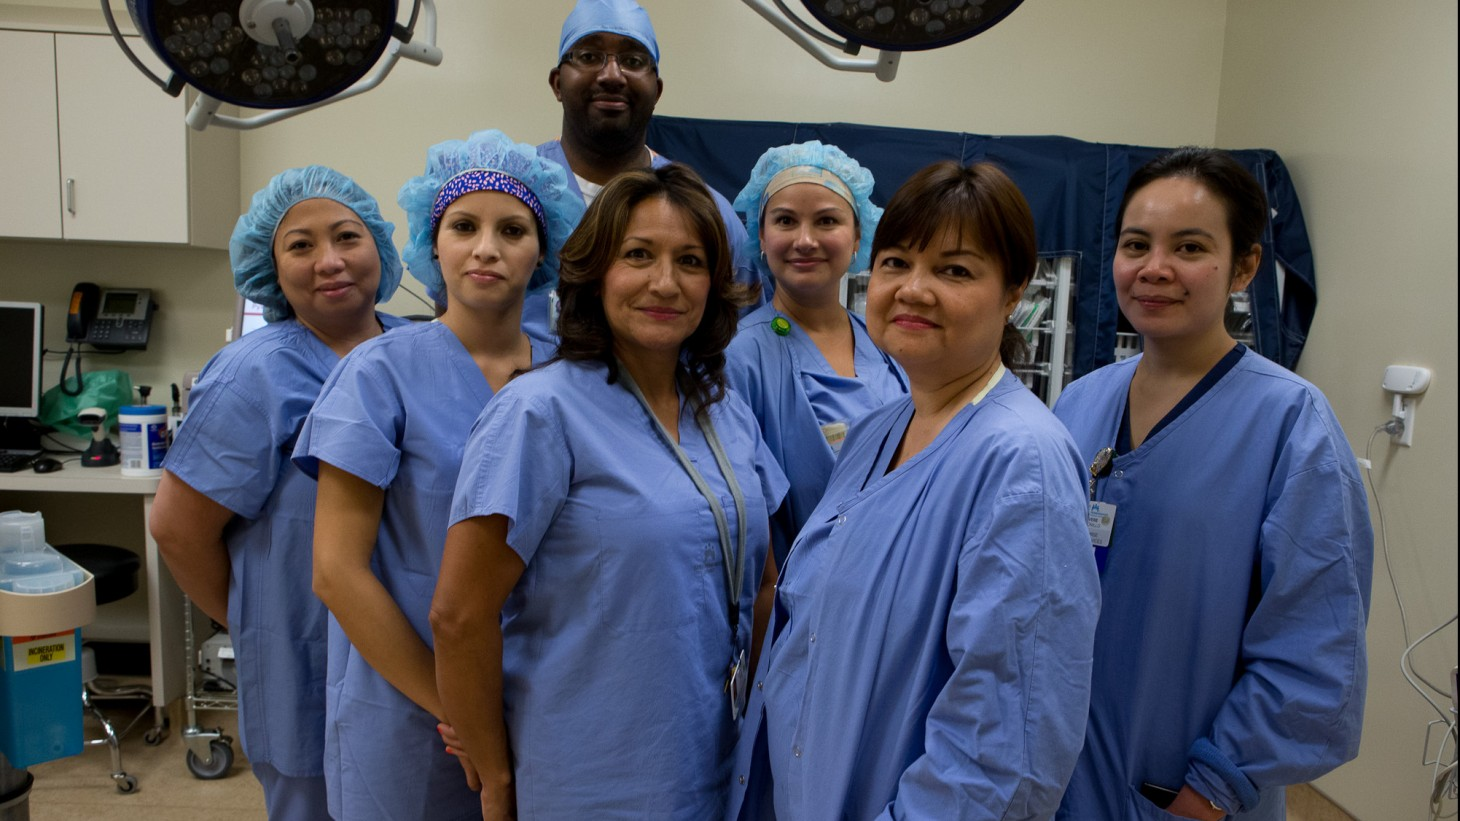 A diverse group of health care workers wearing blue scrubs